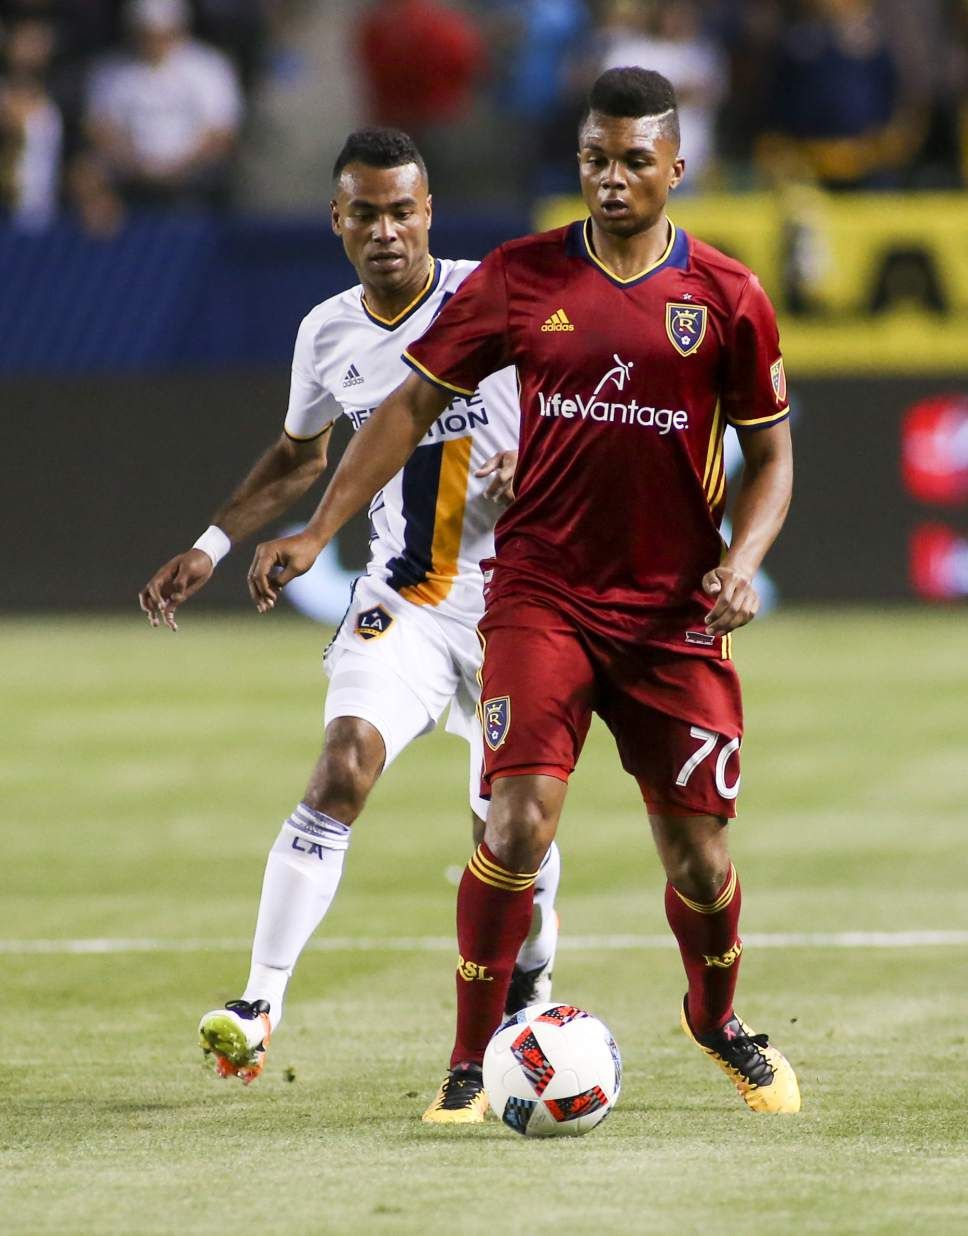 Real Salt Lake midfielder Jordan Allen (70)) in actions against Los Angeles Galaxy in the first half of an MLS soccer game in Carson, Calif., Saturday, April 23, 2016. (AP Photo/Ringo H.W. Chiu)